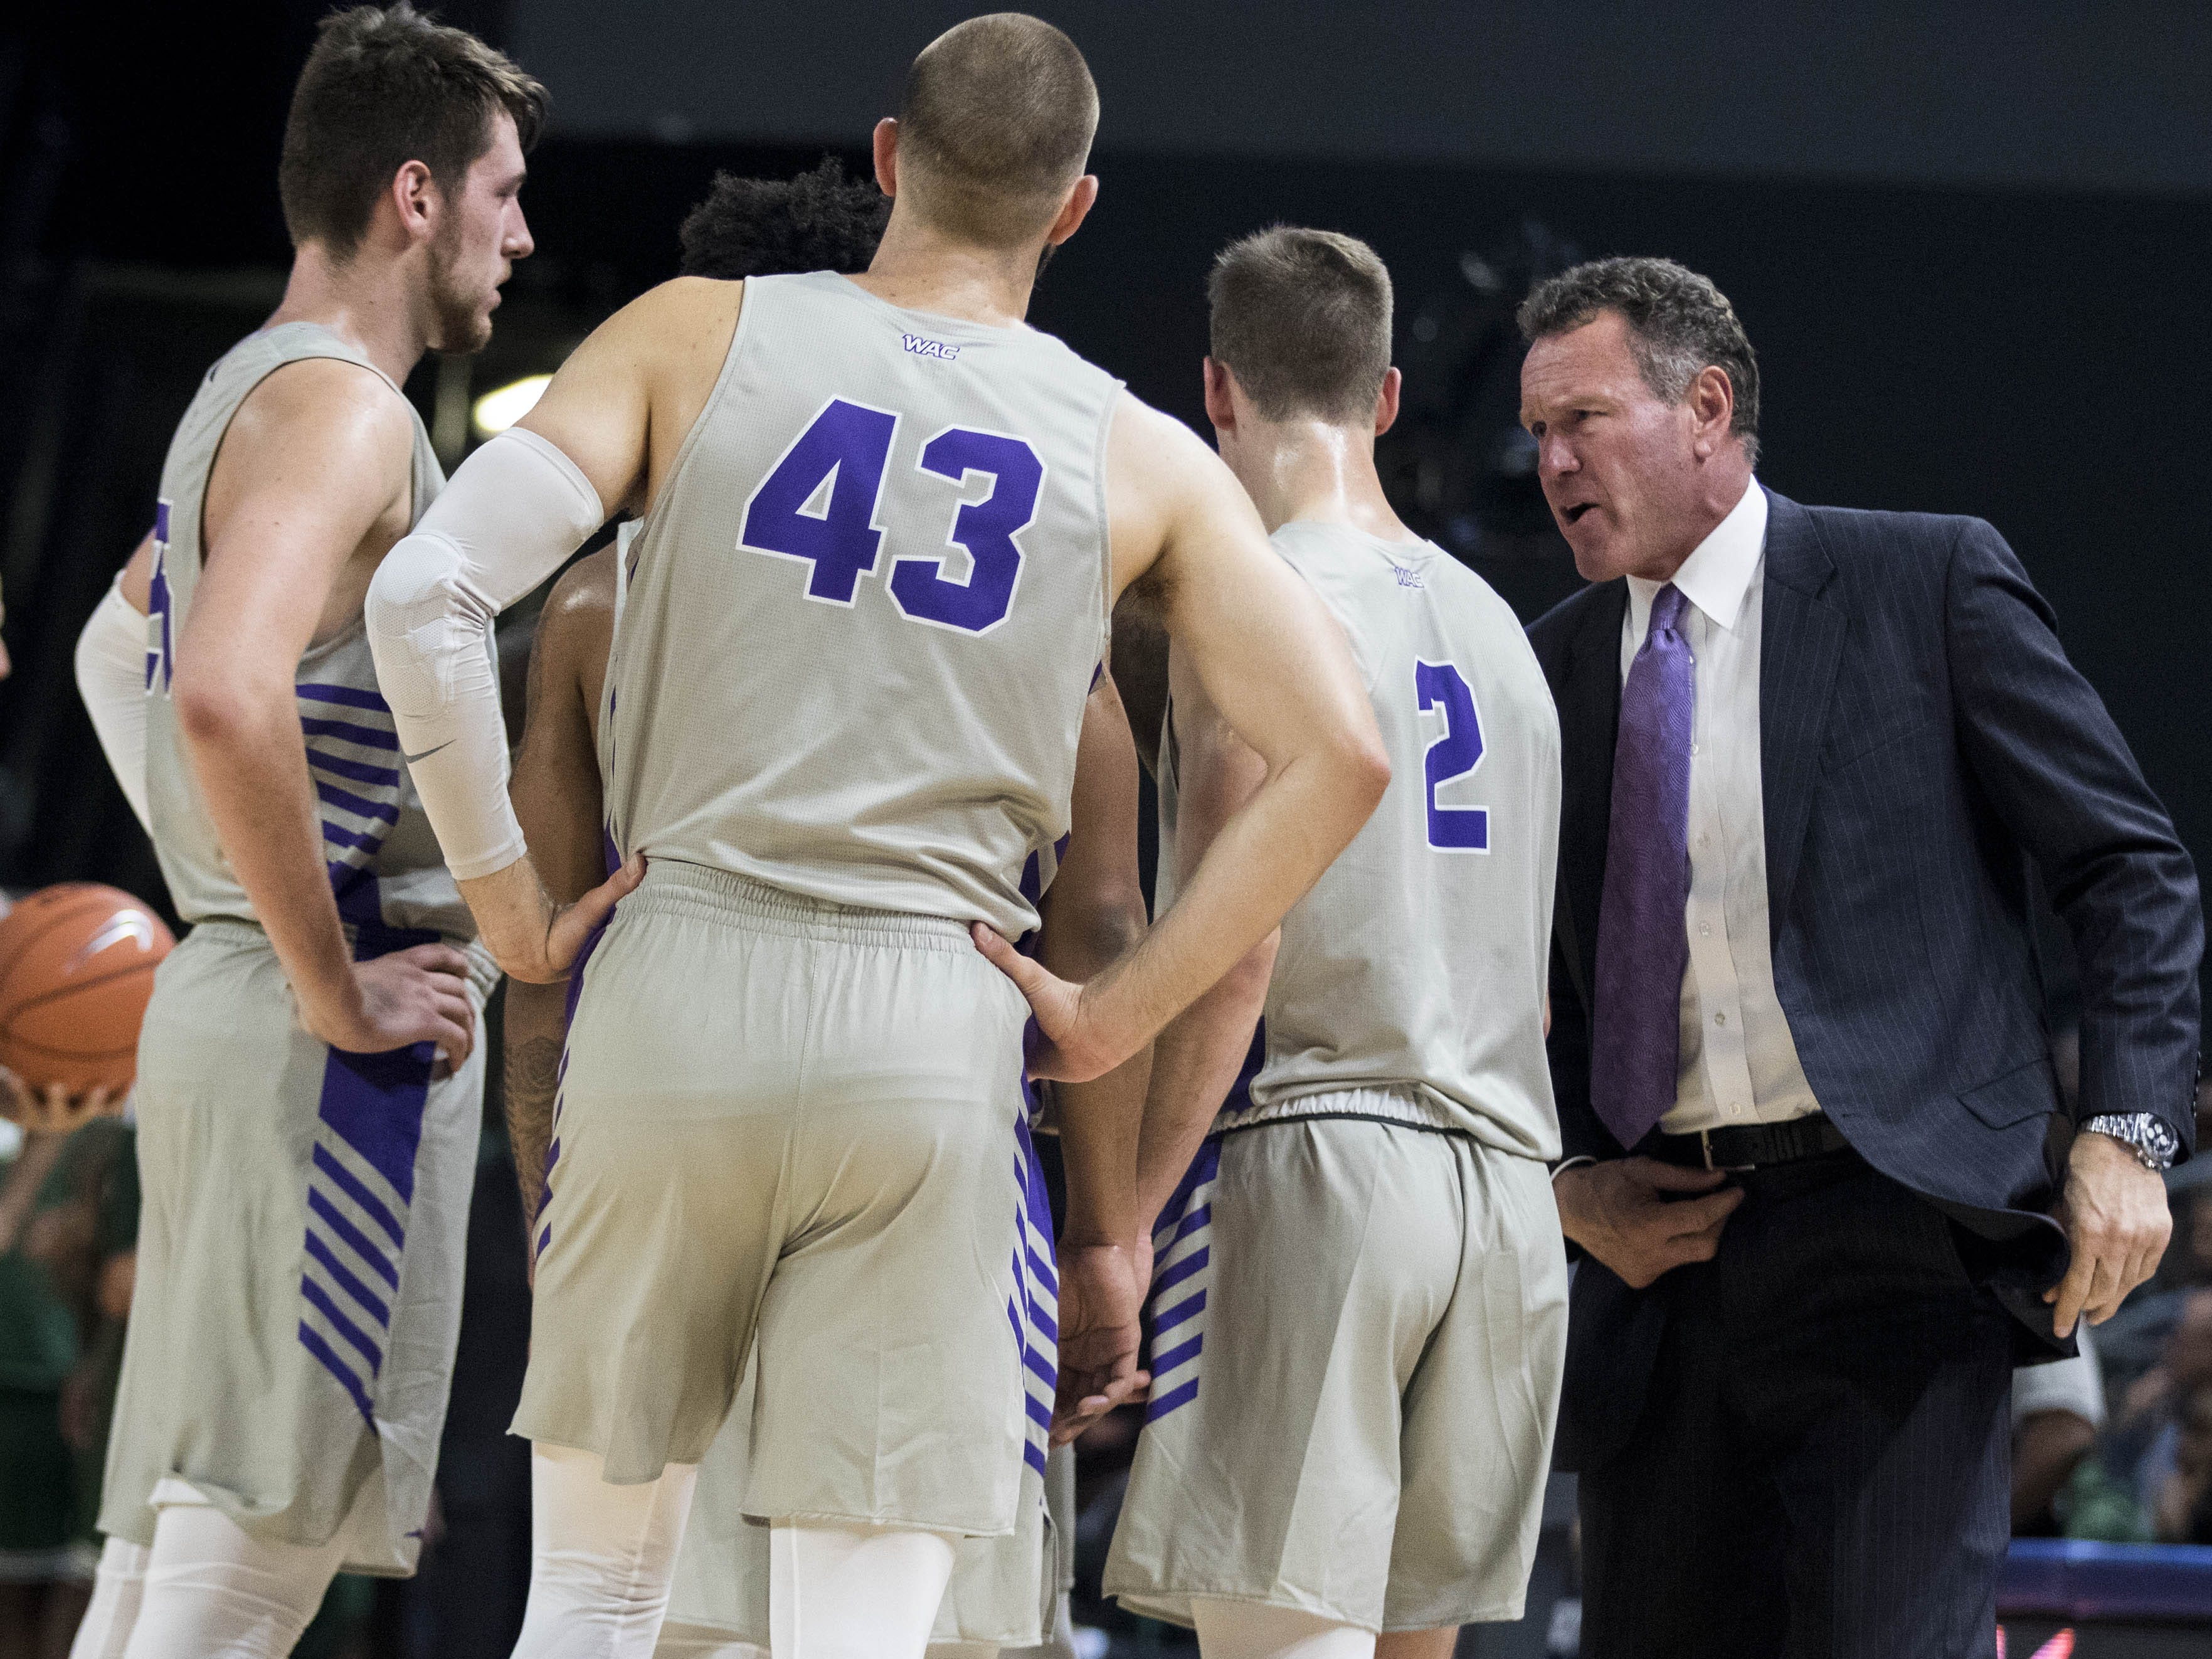 Grand Canyon University head coach Dan Majerle talks to his team during the second half of their game in Phoenix, Monday, Nov. 11, 2018.